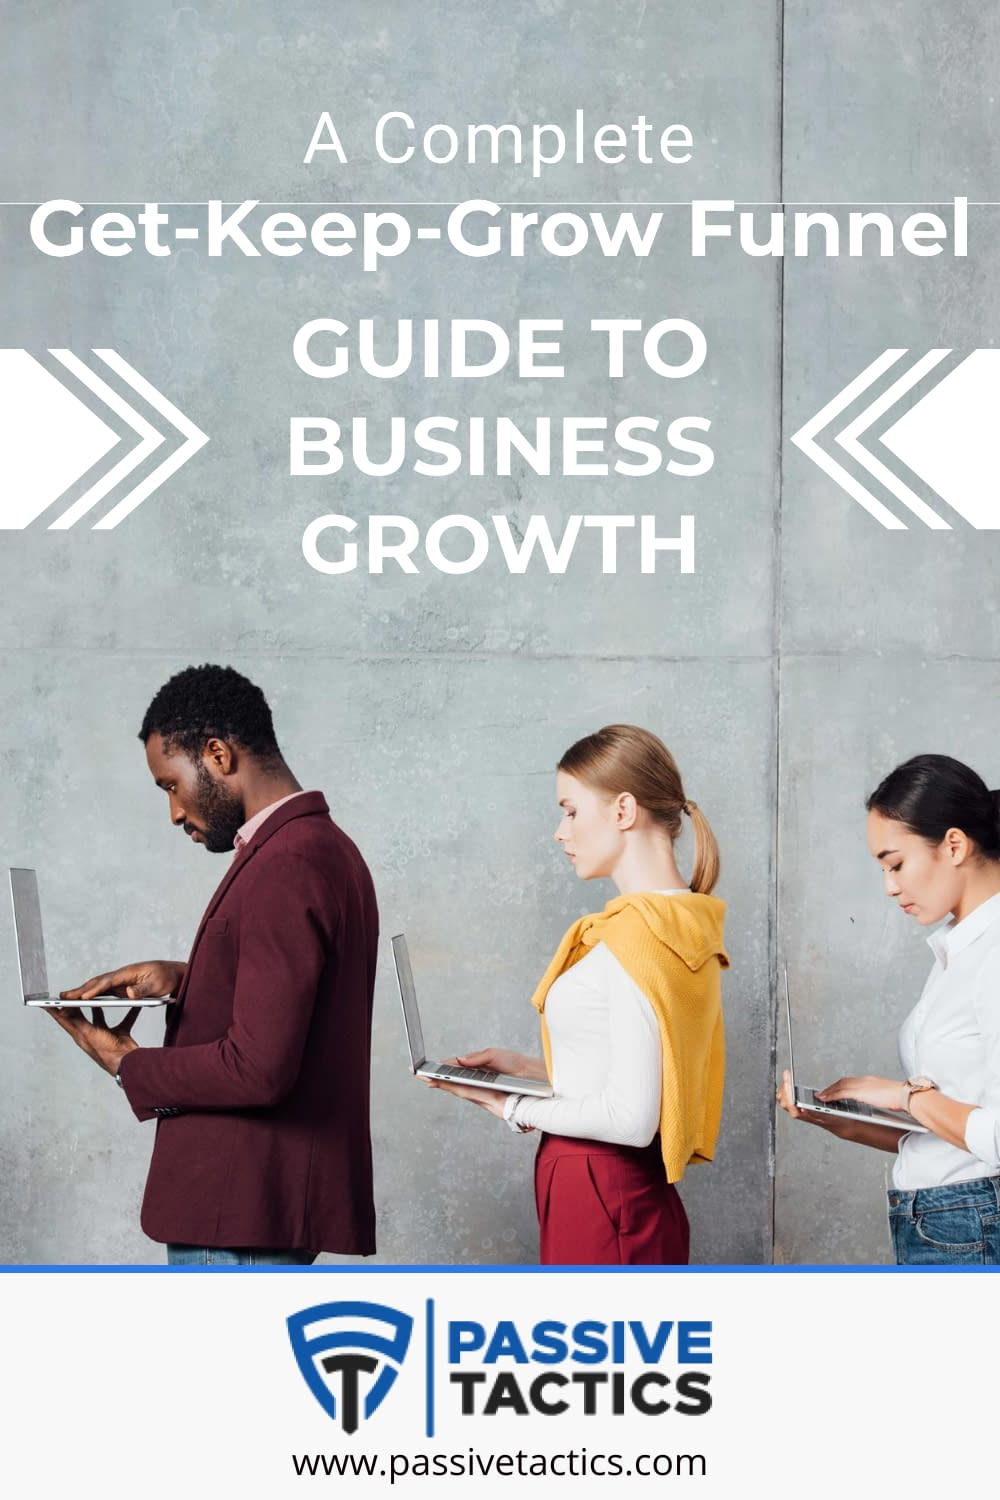 Get, Keep & Grow Funnel: A Guide To Business Growth!